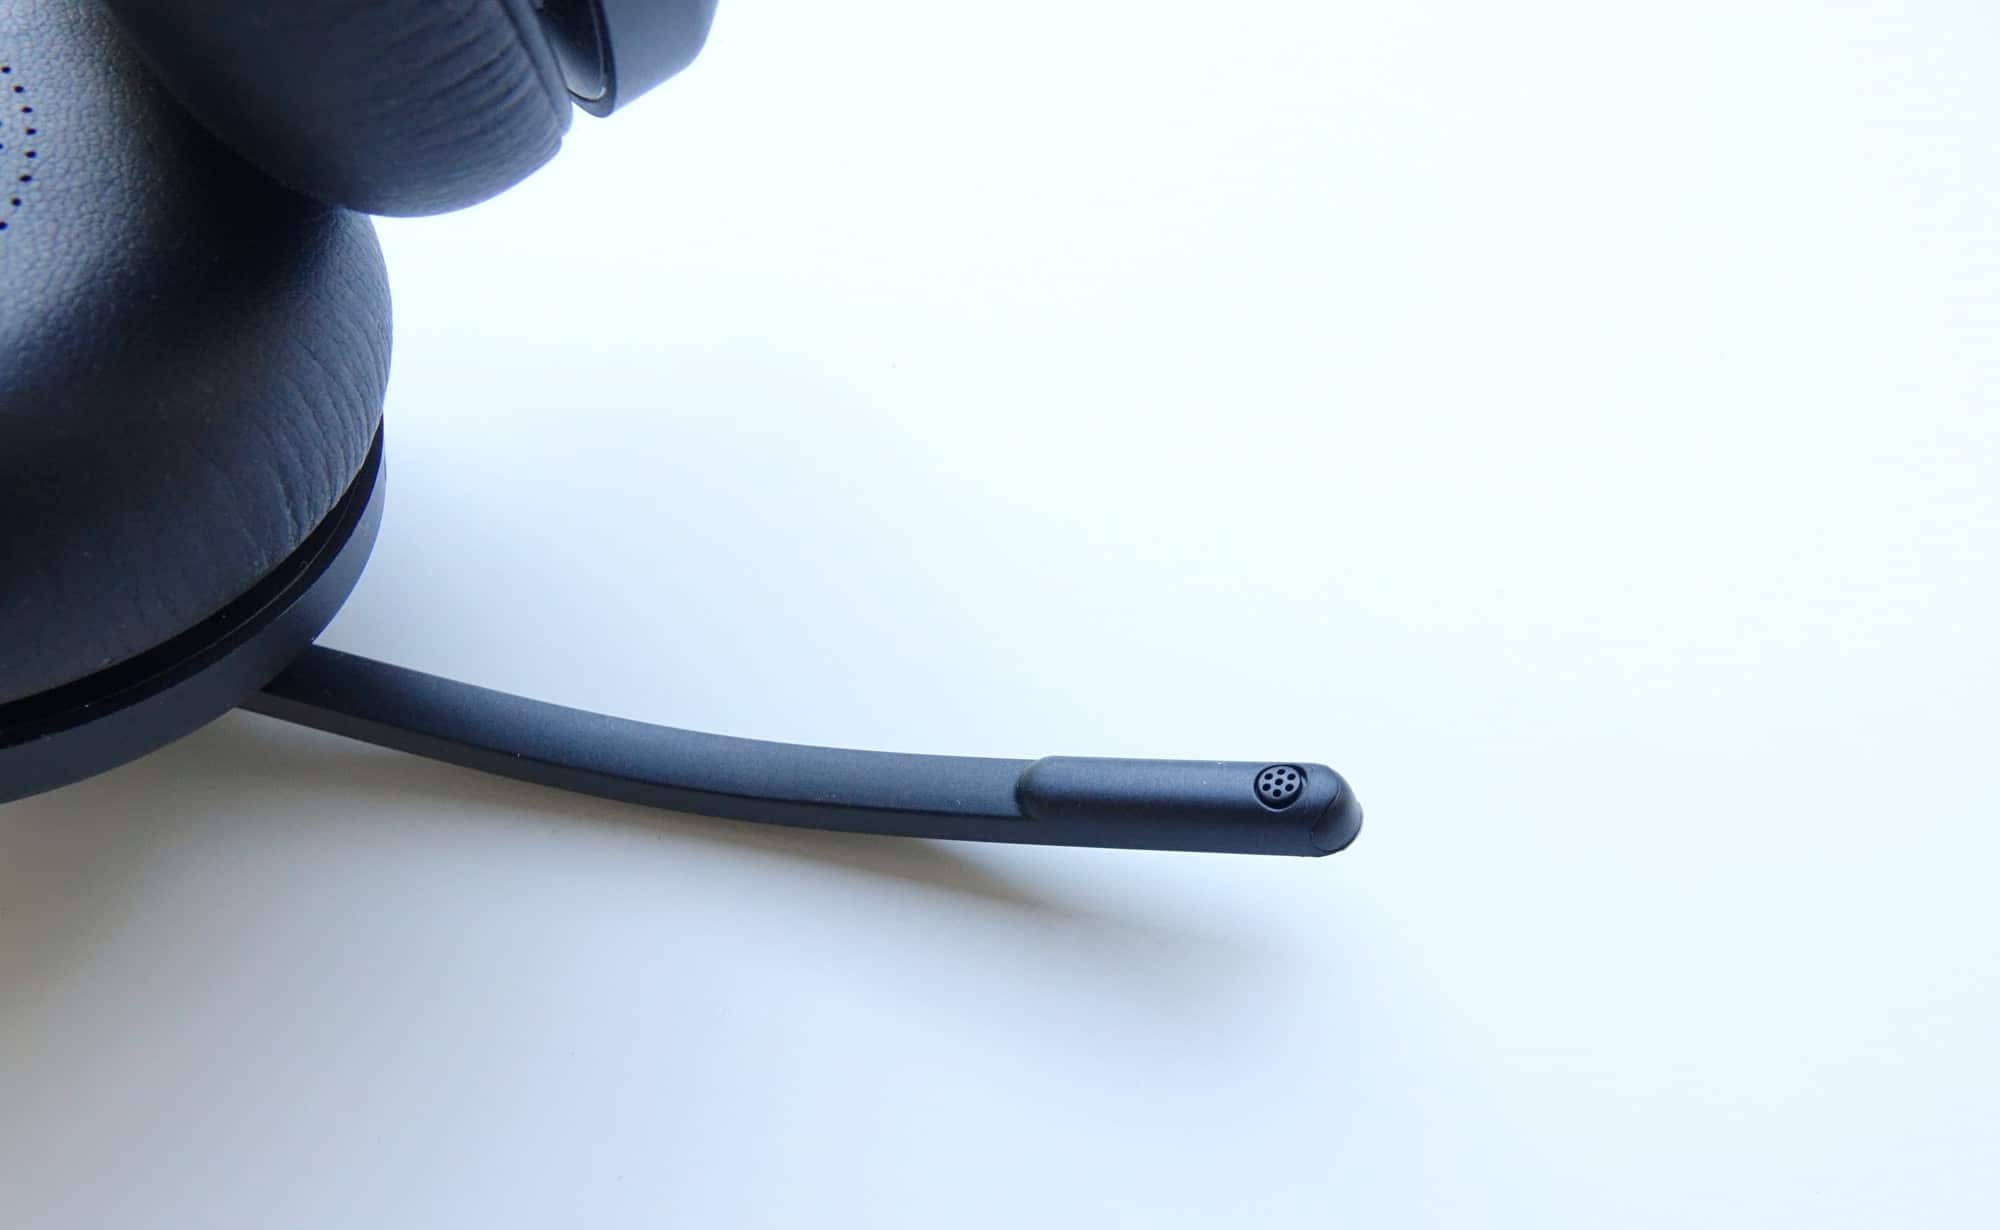 The microphone on the Jabra Evolve2 65 headset